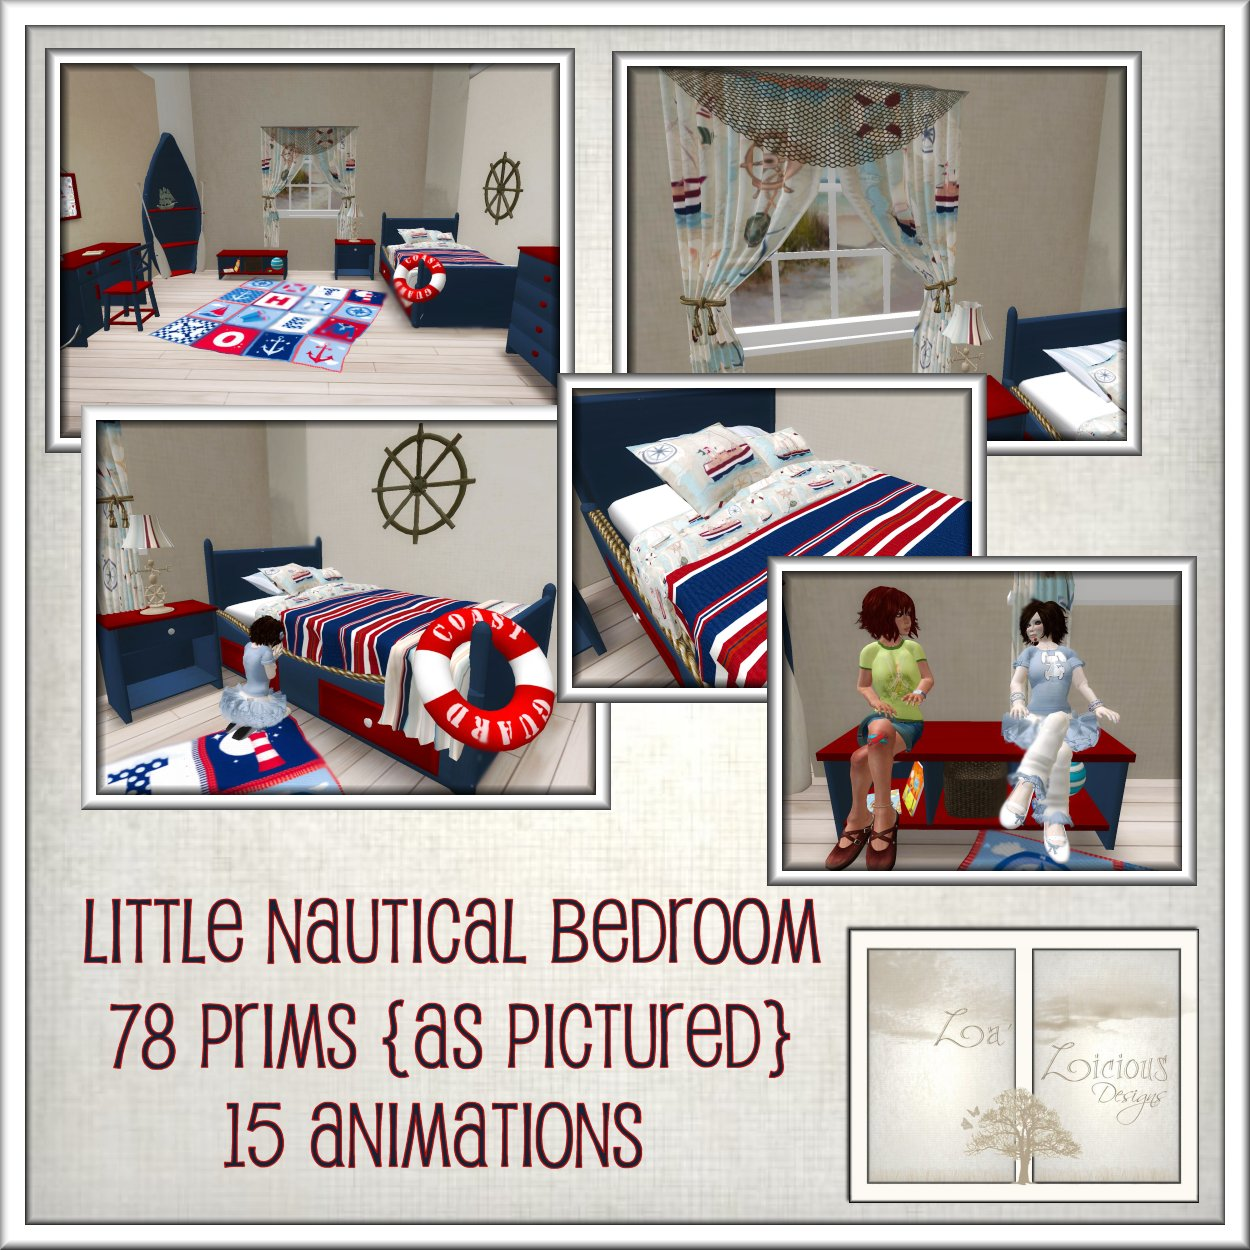 La'Licious Designs: *NEW* Little Nautical Bedroom!